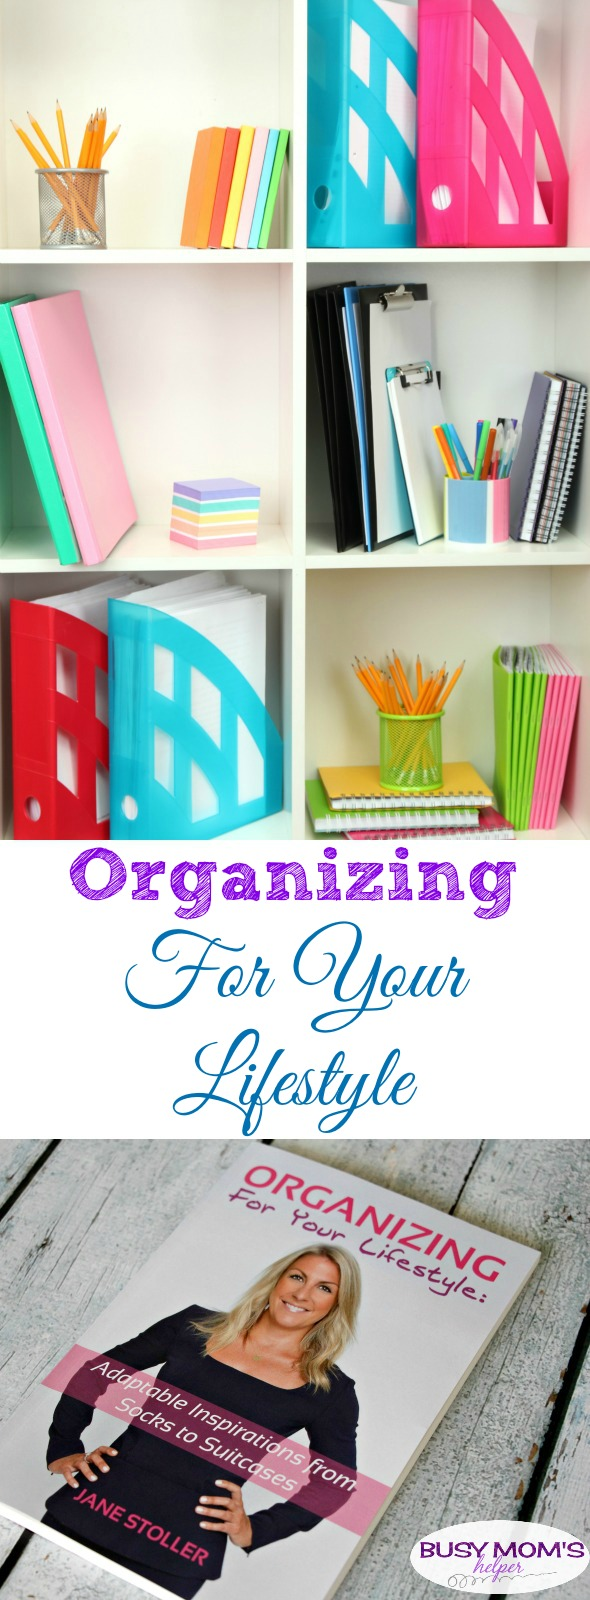 Organizing for Your Lifestyle / genius organization hacks and ideas #ad